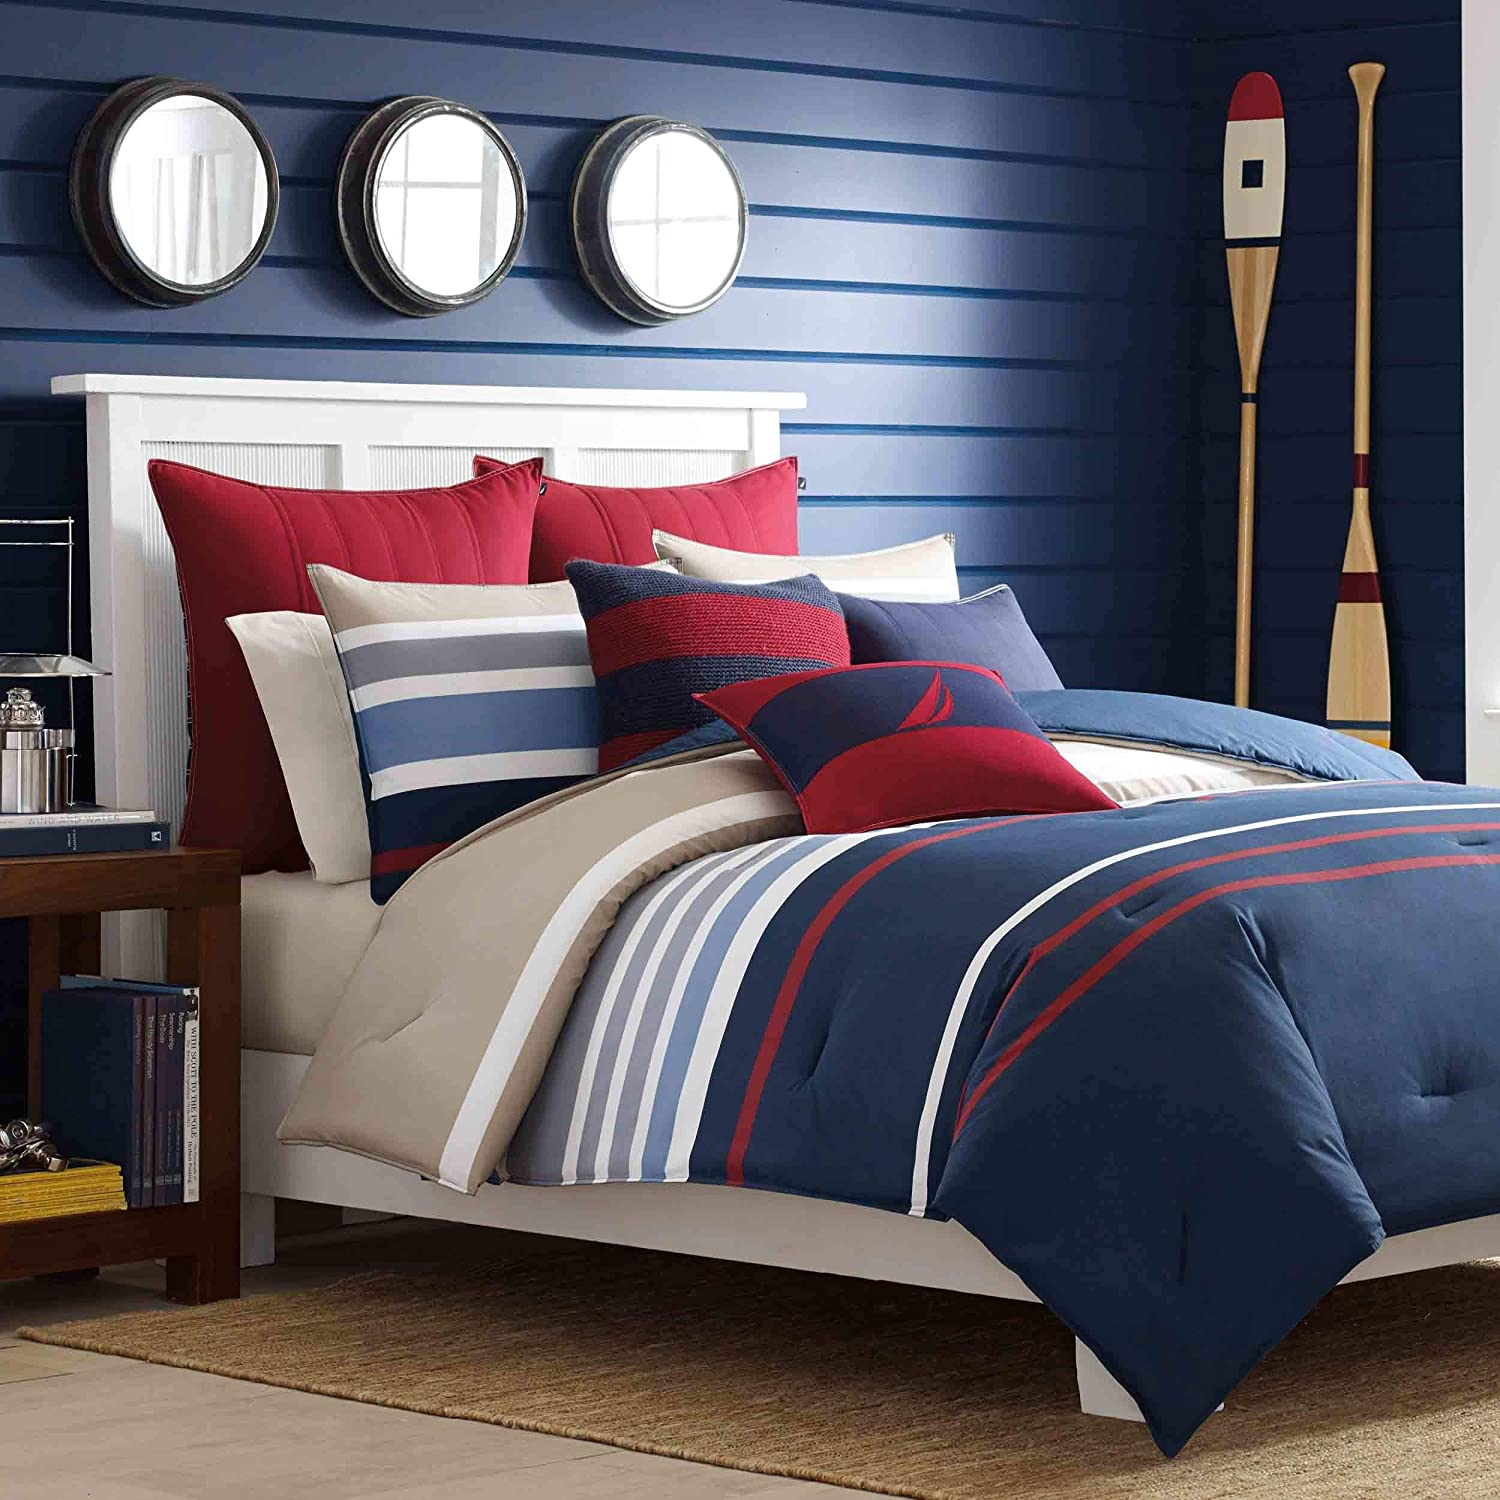 Nautica Bradford Collection 100 Percent Cotton Cozy and Soft, Durable and Breathable Striped Reversible Comforter Matching Shams, 3-Piece Bedding Set, Queen, Navy/Khaki